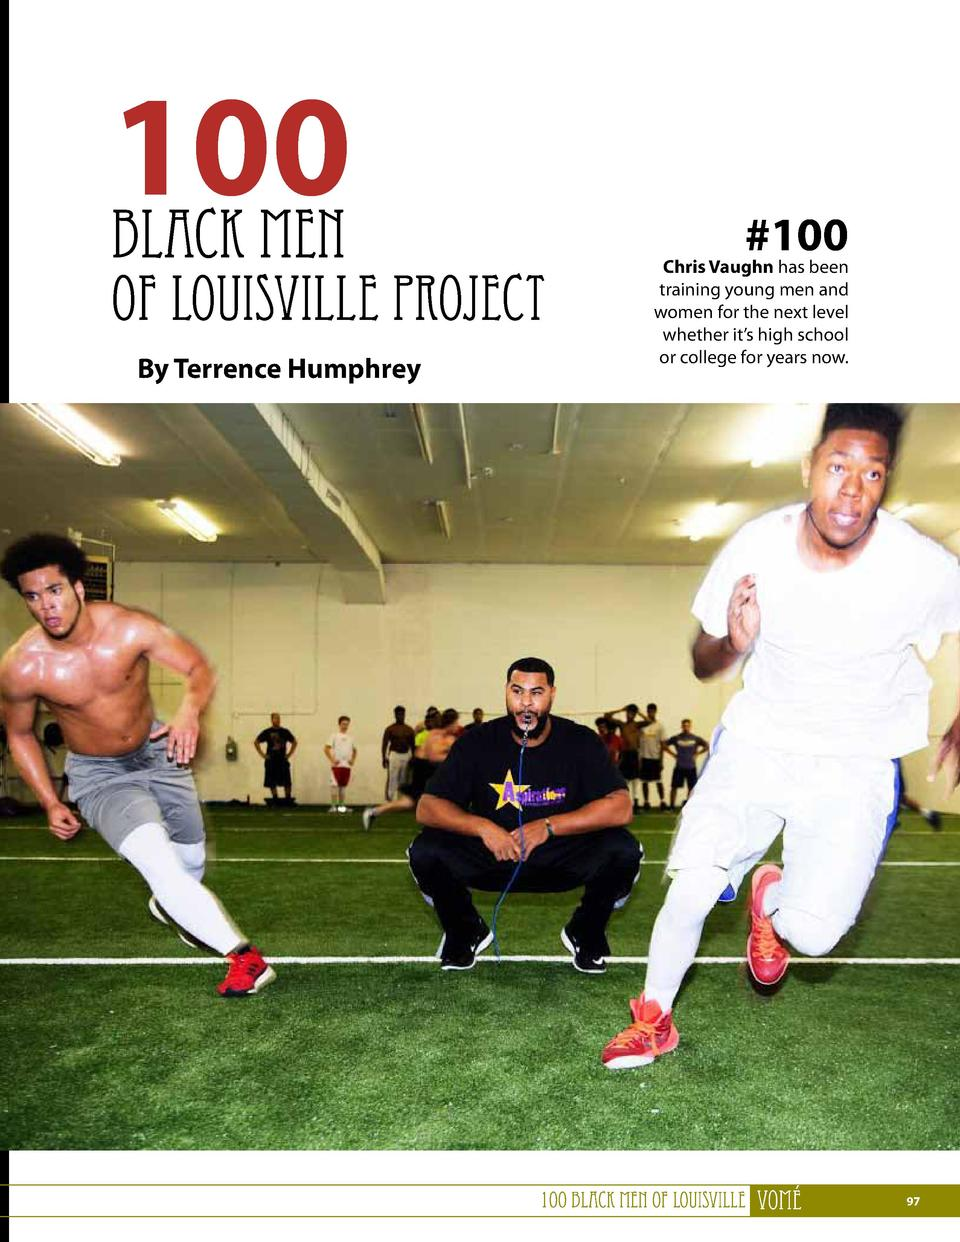 100 Black Men  of Louisville Project By Terrence Humphrey   100  Chris Vaughn has been training young men and women for th...